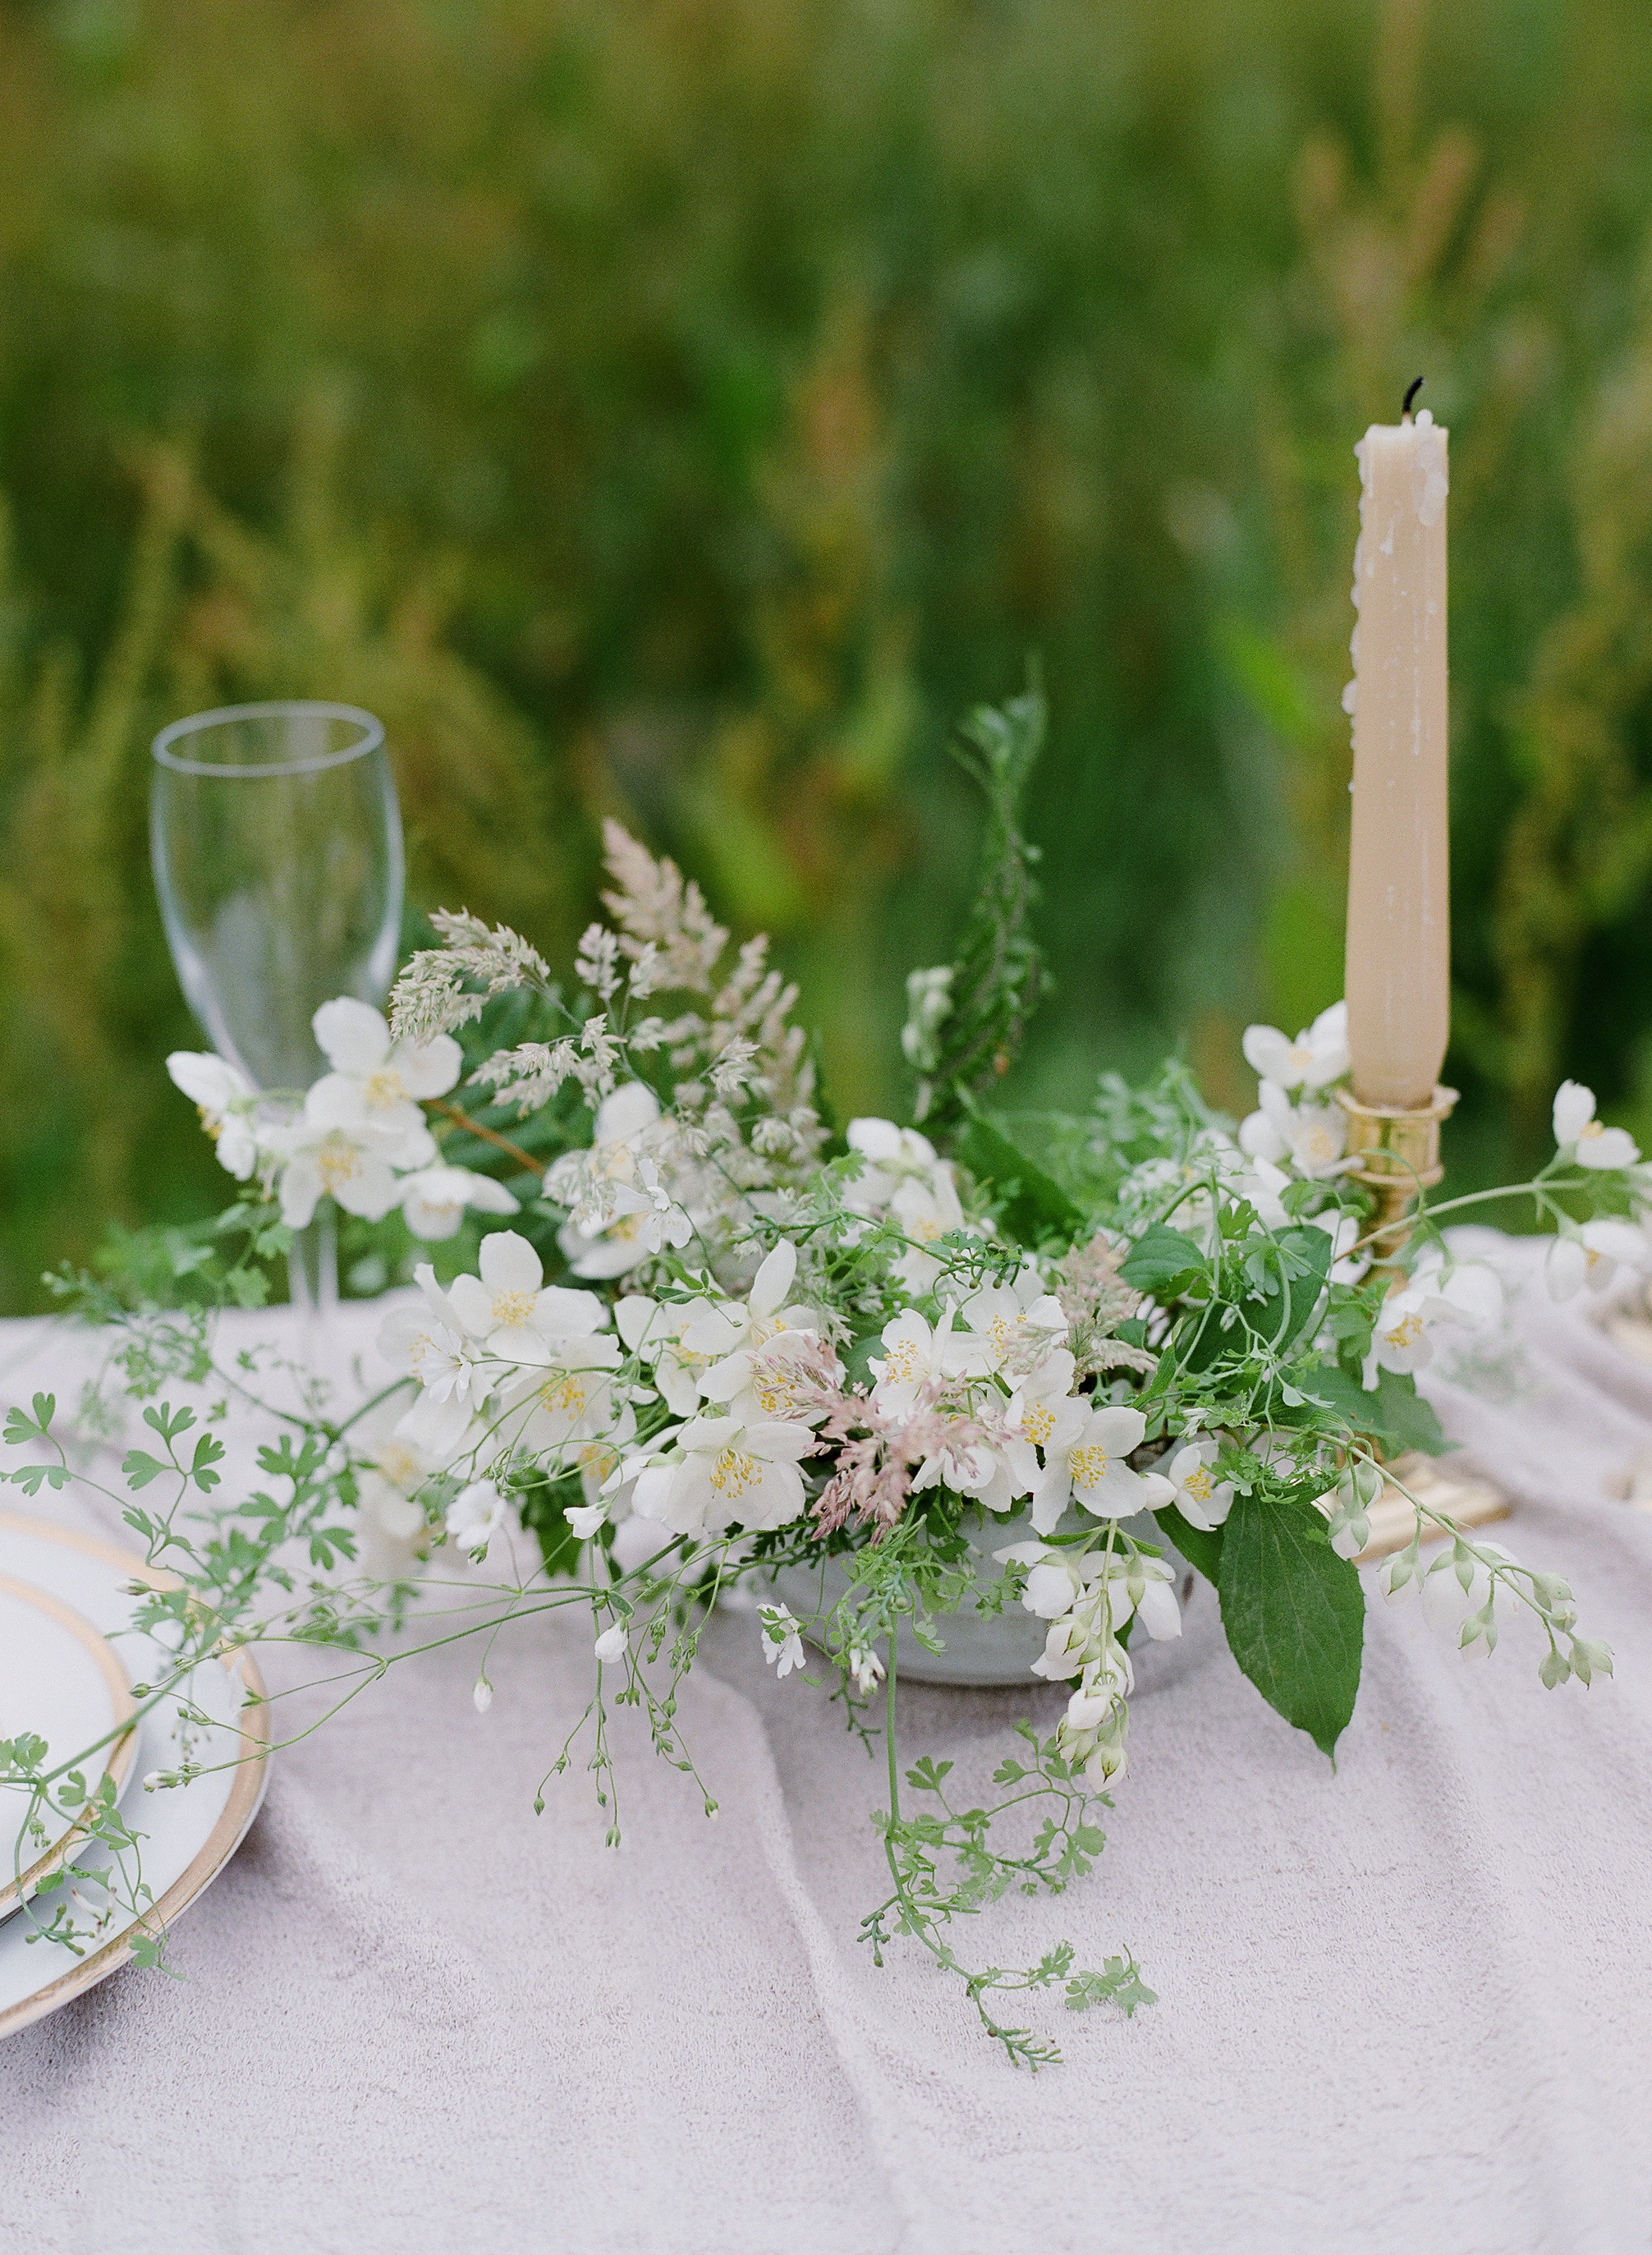 Wedding table flowers in Cornwall